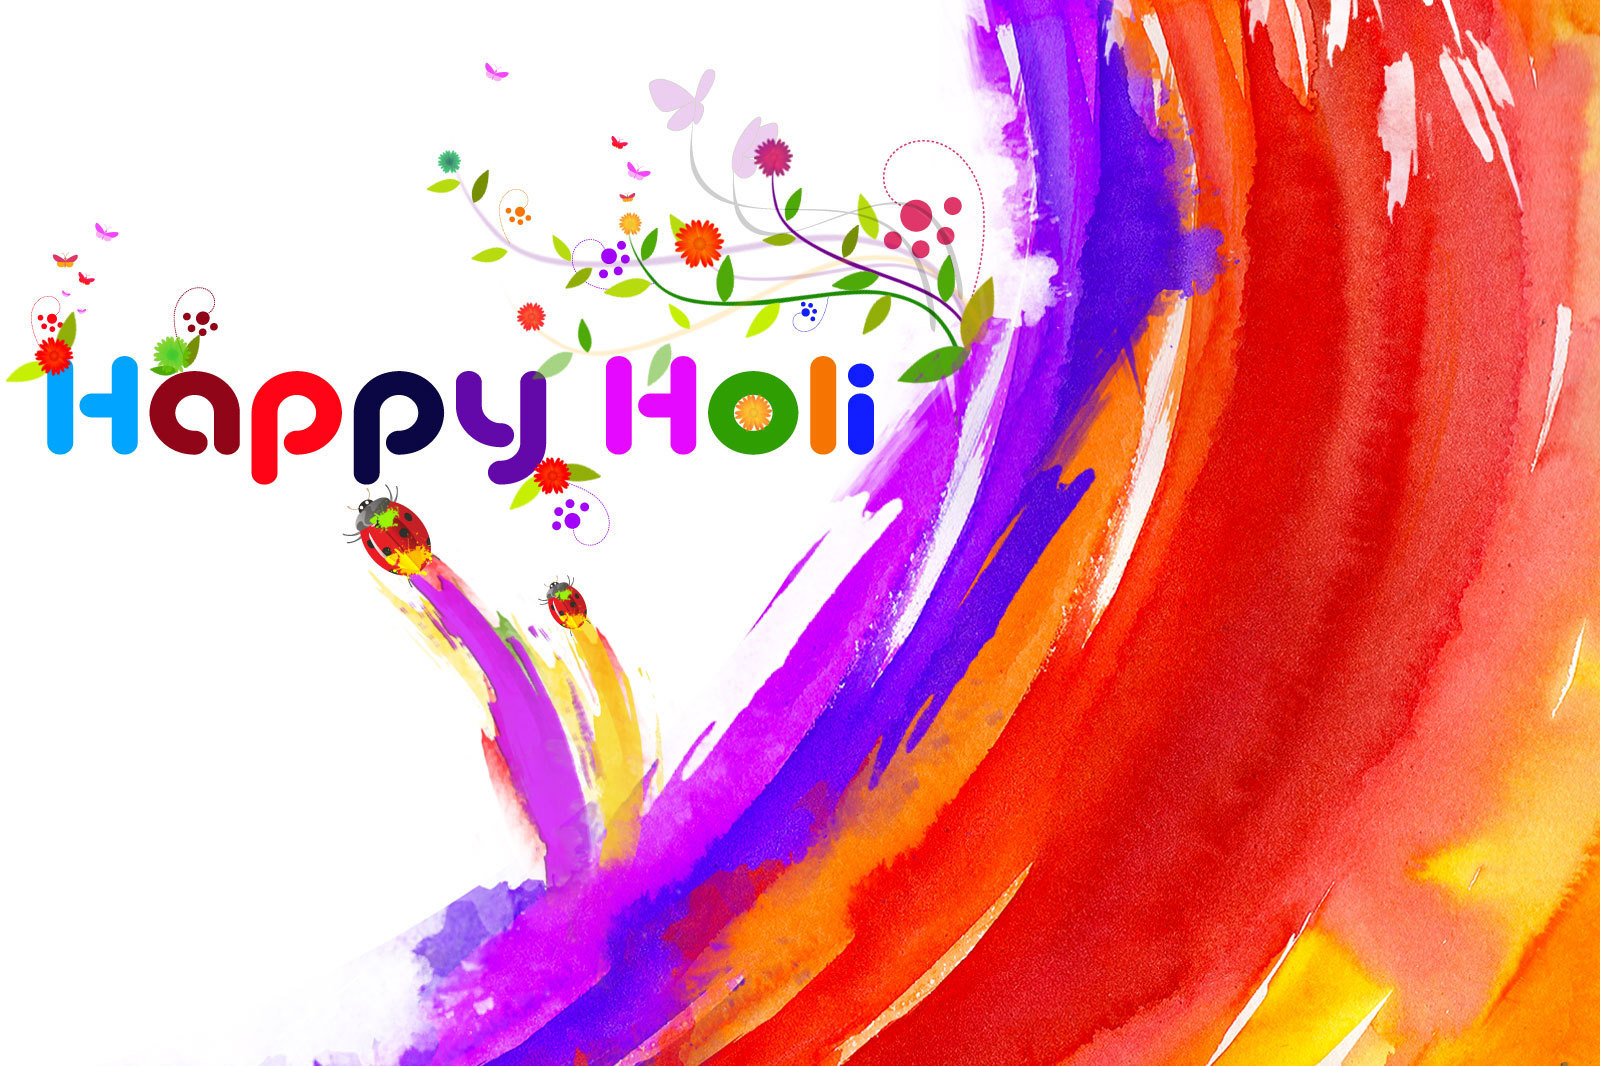 Happy Holi Images And Photos For Whatsapp U0026 Facebook 2017